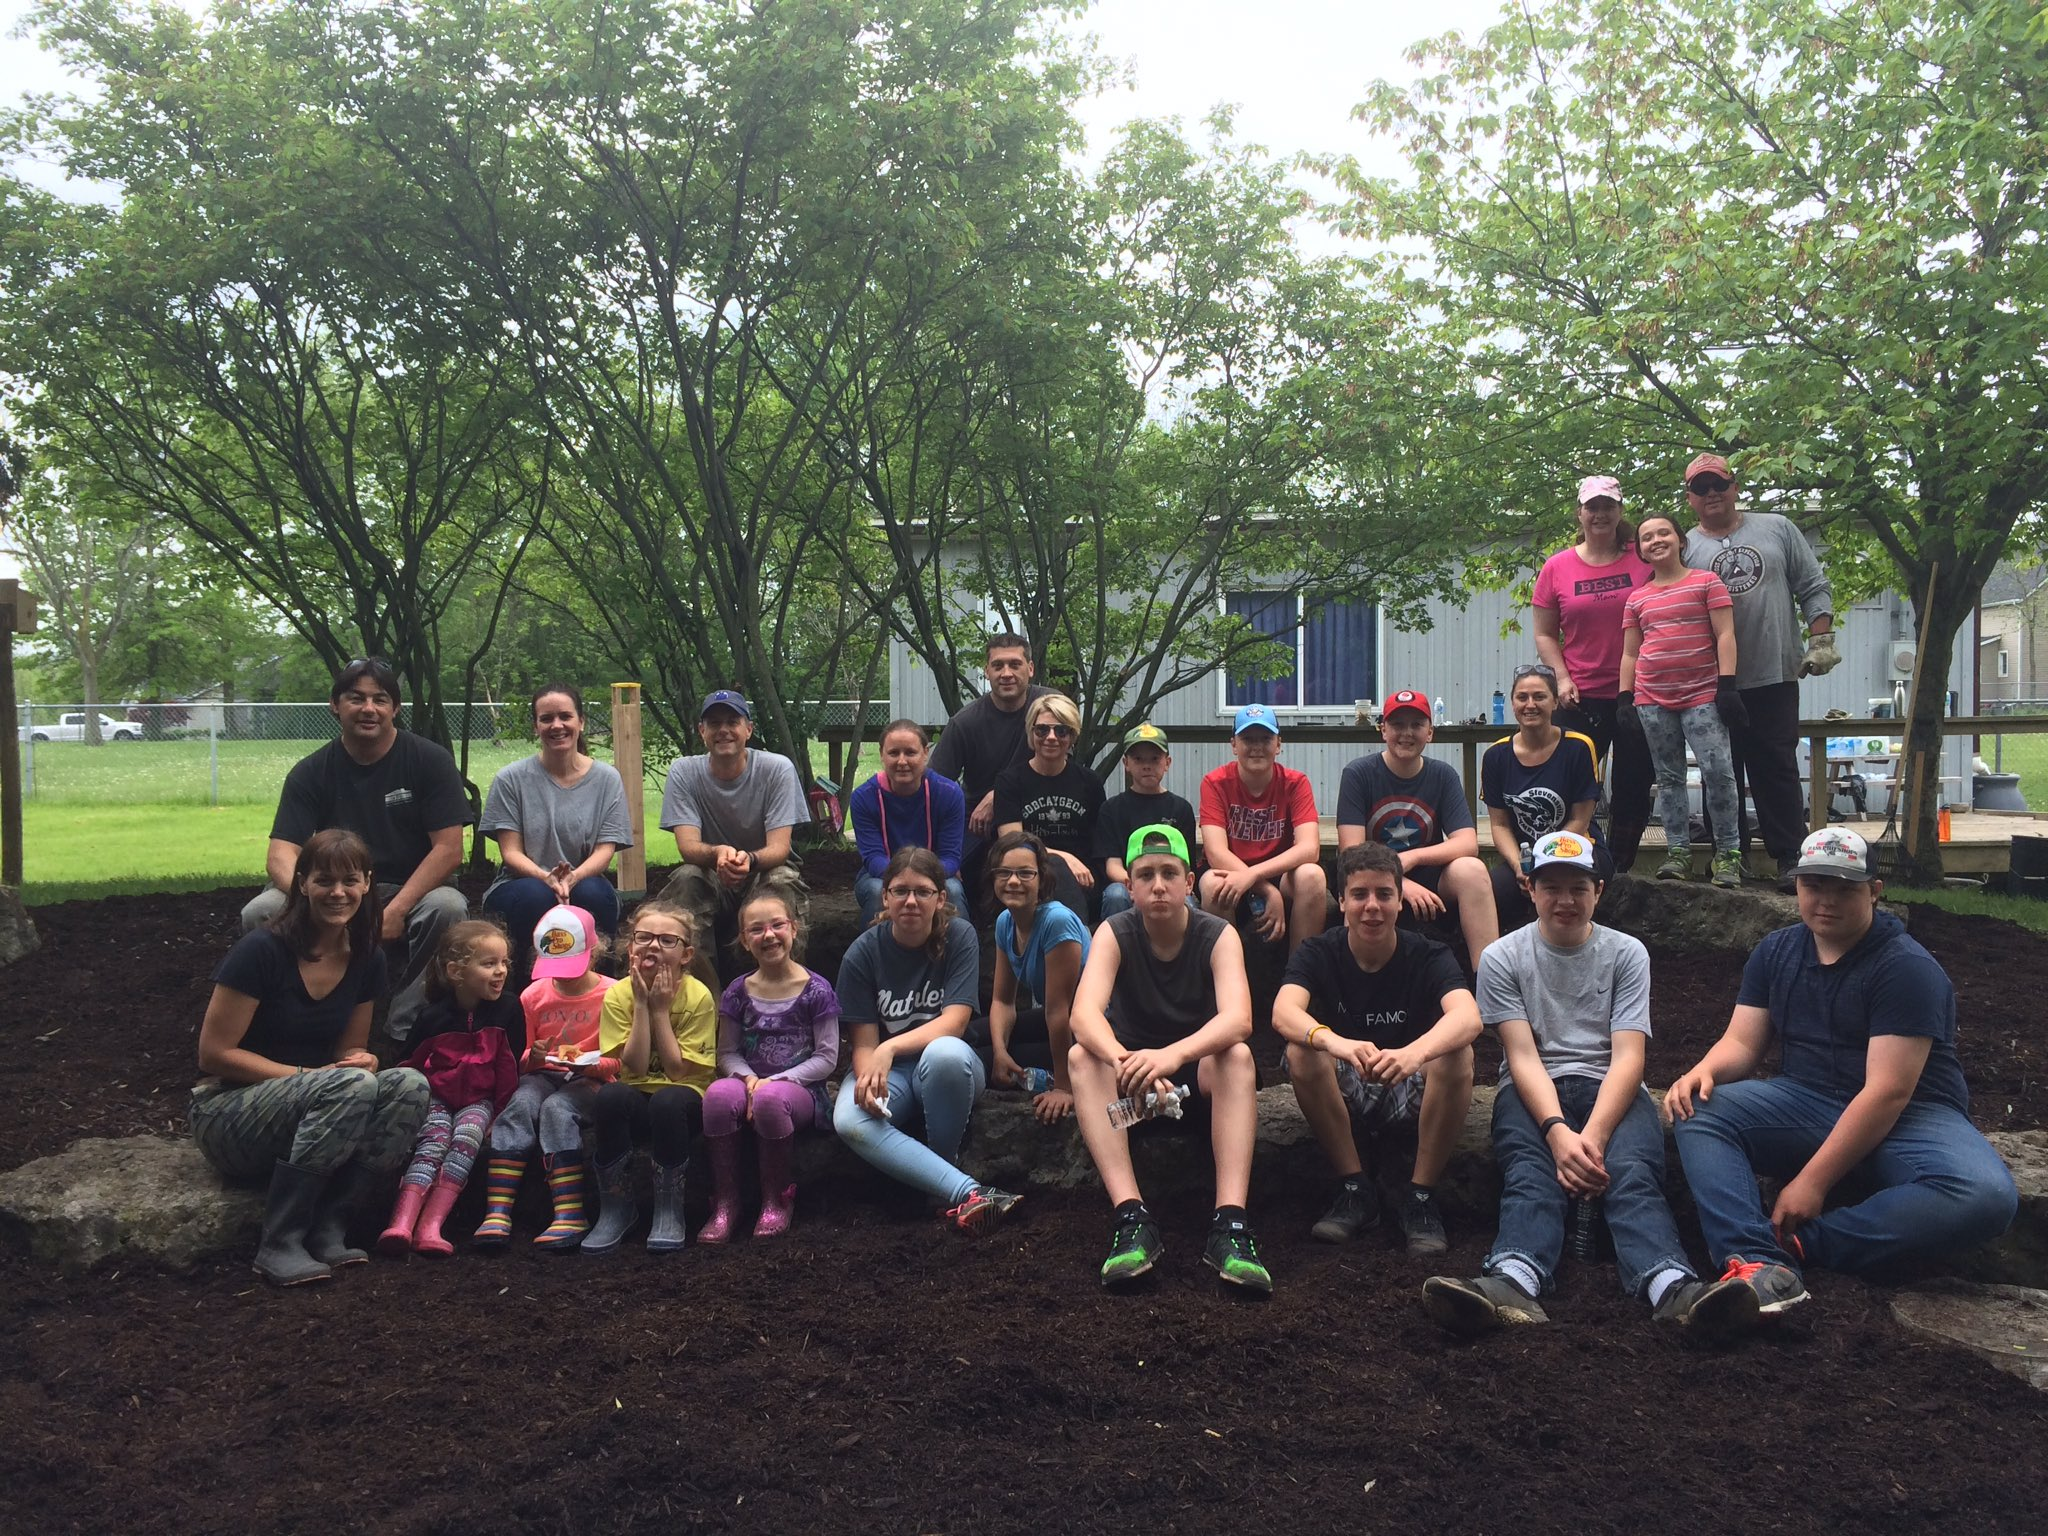 Thanks to everyone who came out on Saturday to clean-up our outdoor classroom. It looks great! https://t.co/cb4R7EHcrs